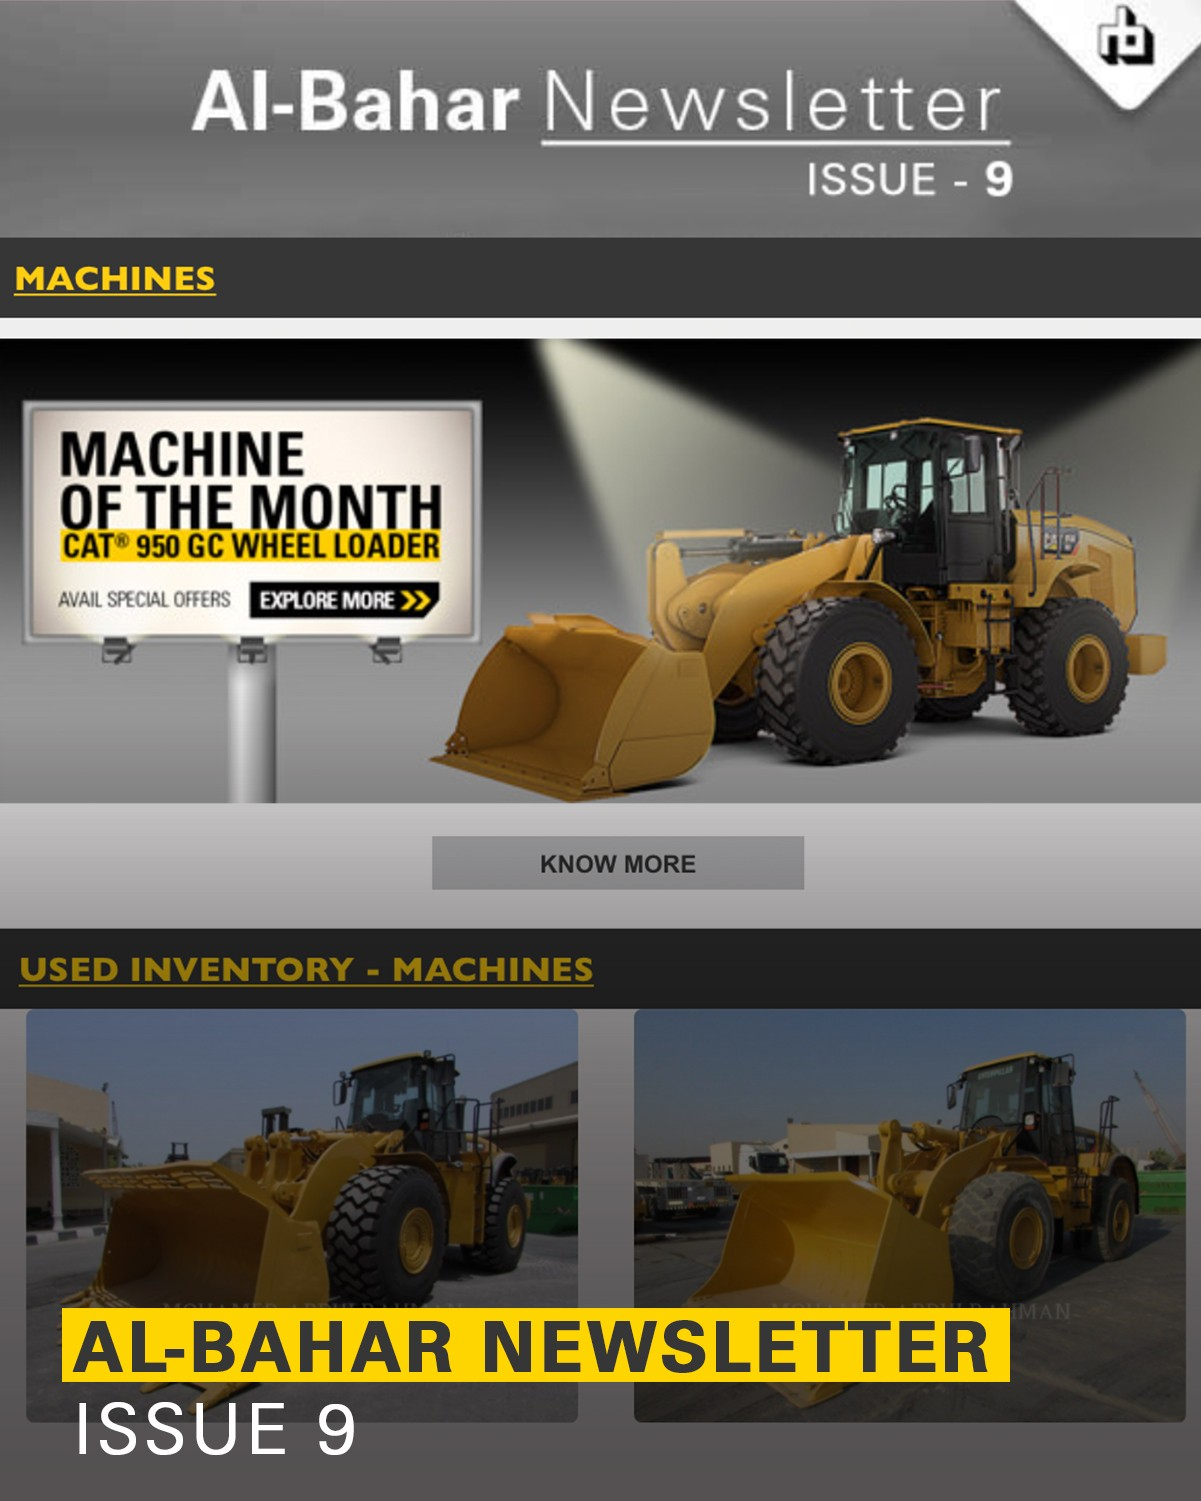 al-bahar-2018-newsletter-issue-9